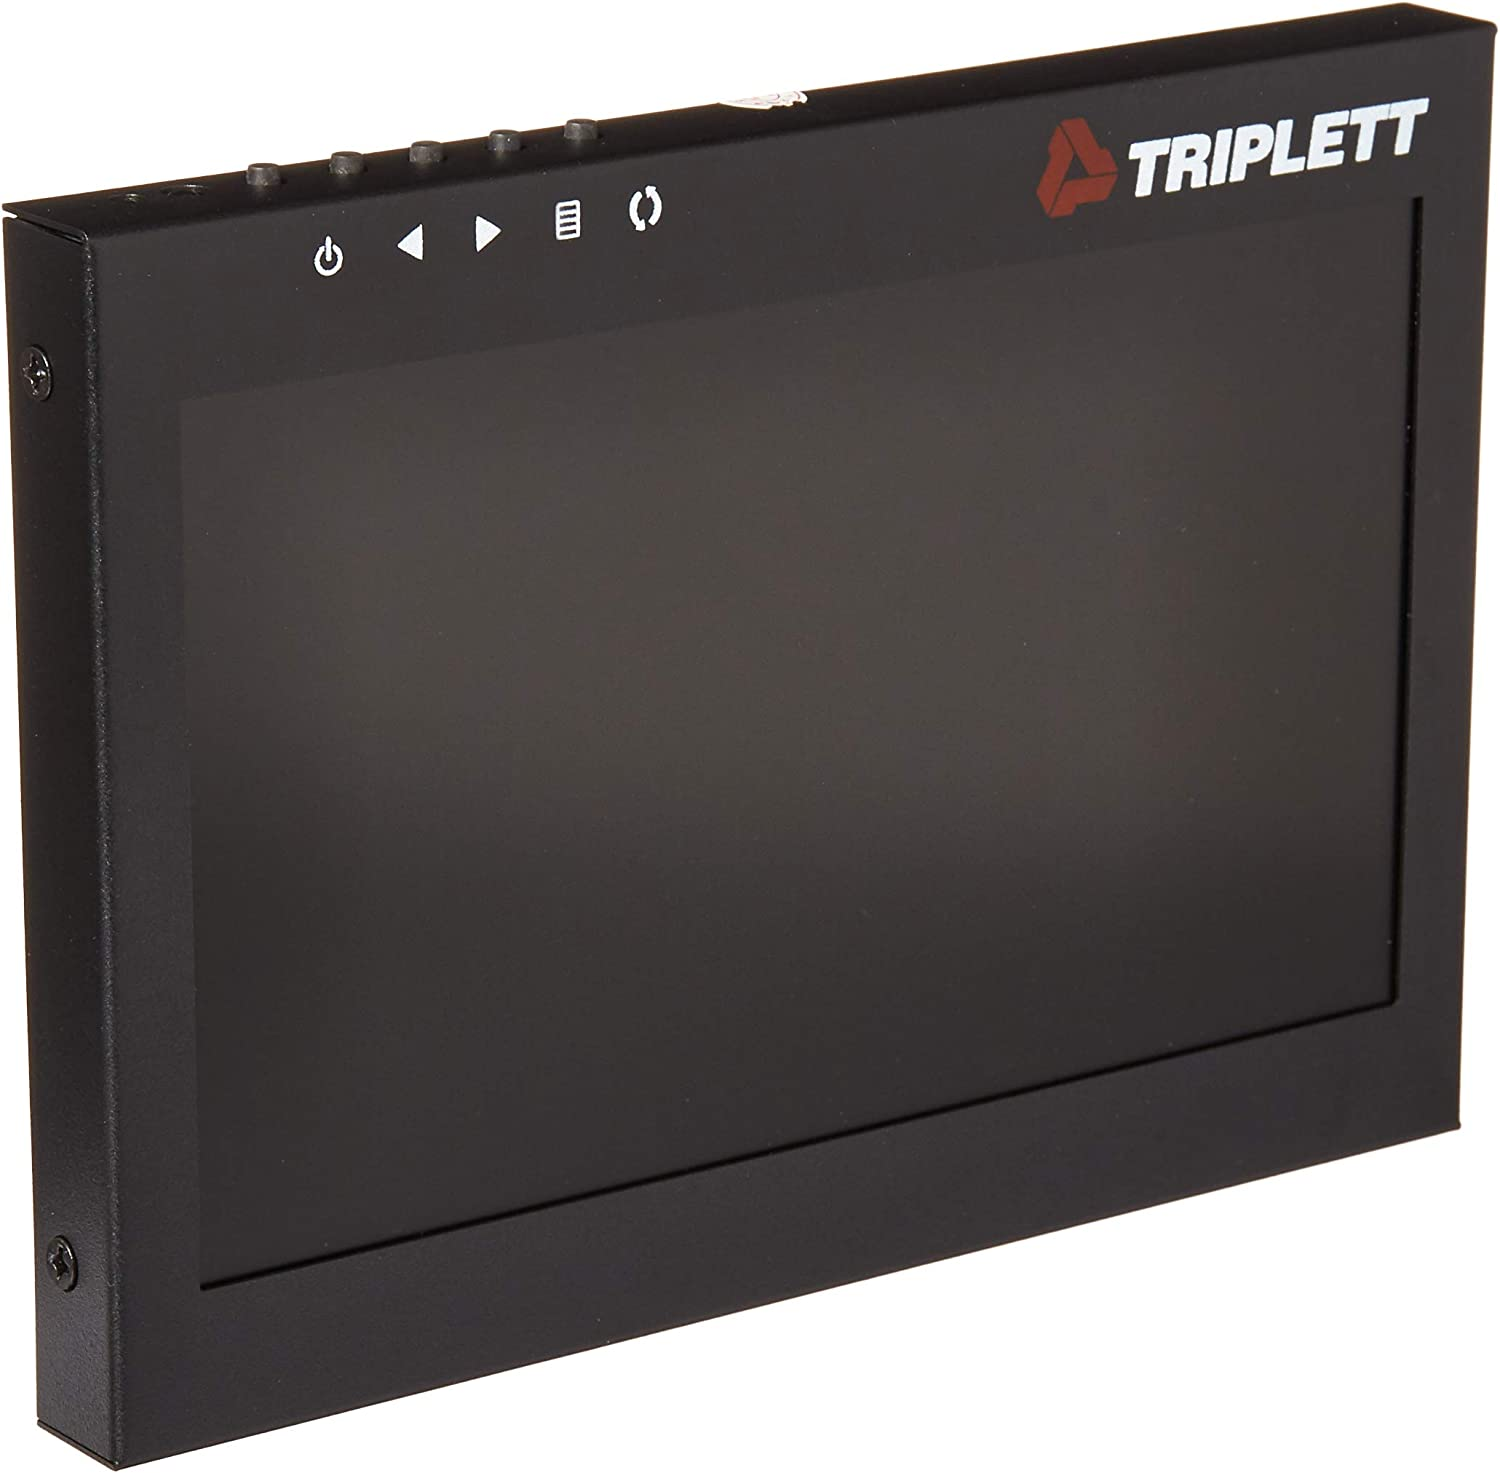 Triplett Multi-Purpose 7 1080P 4:3 HD LED Monitor with Carry Case Use as Monitor for Computers DVRs Laptops AV //BNC //VGA //HDMI - DSLR Cameras /& Raspberry PI Projects Security Cameras HDCM